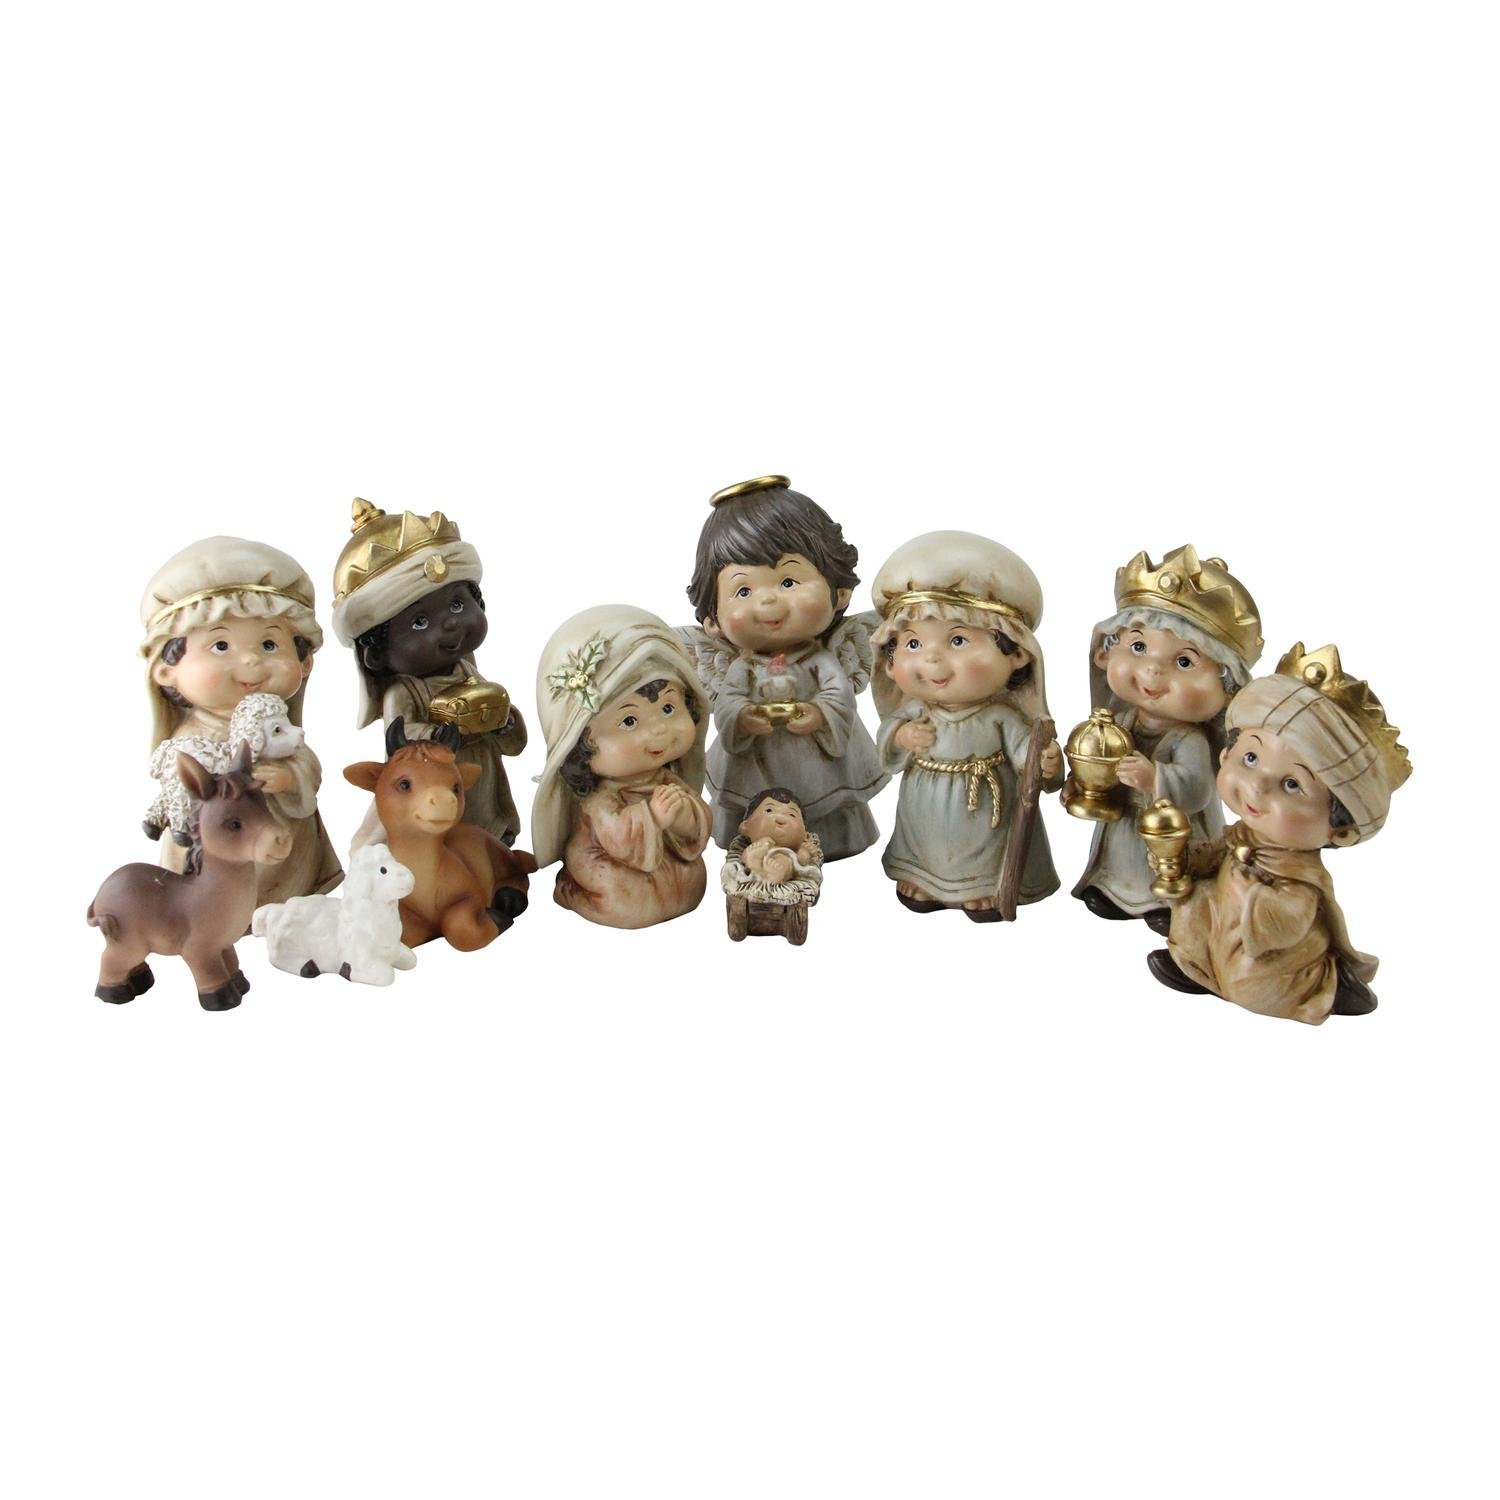 Northlight QR01730 Christmas Nativity Figure Set with Gold Accents